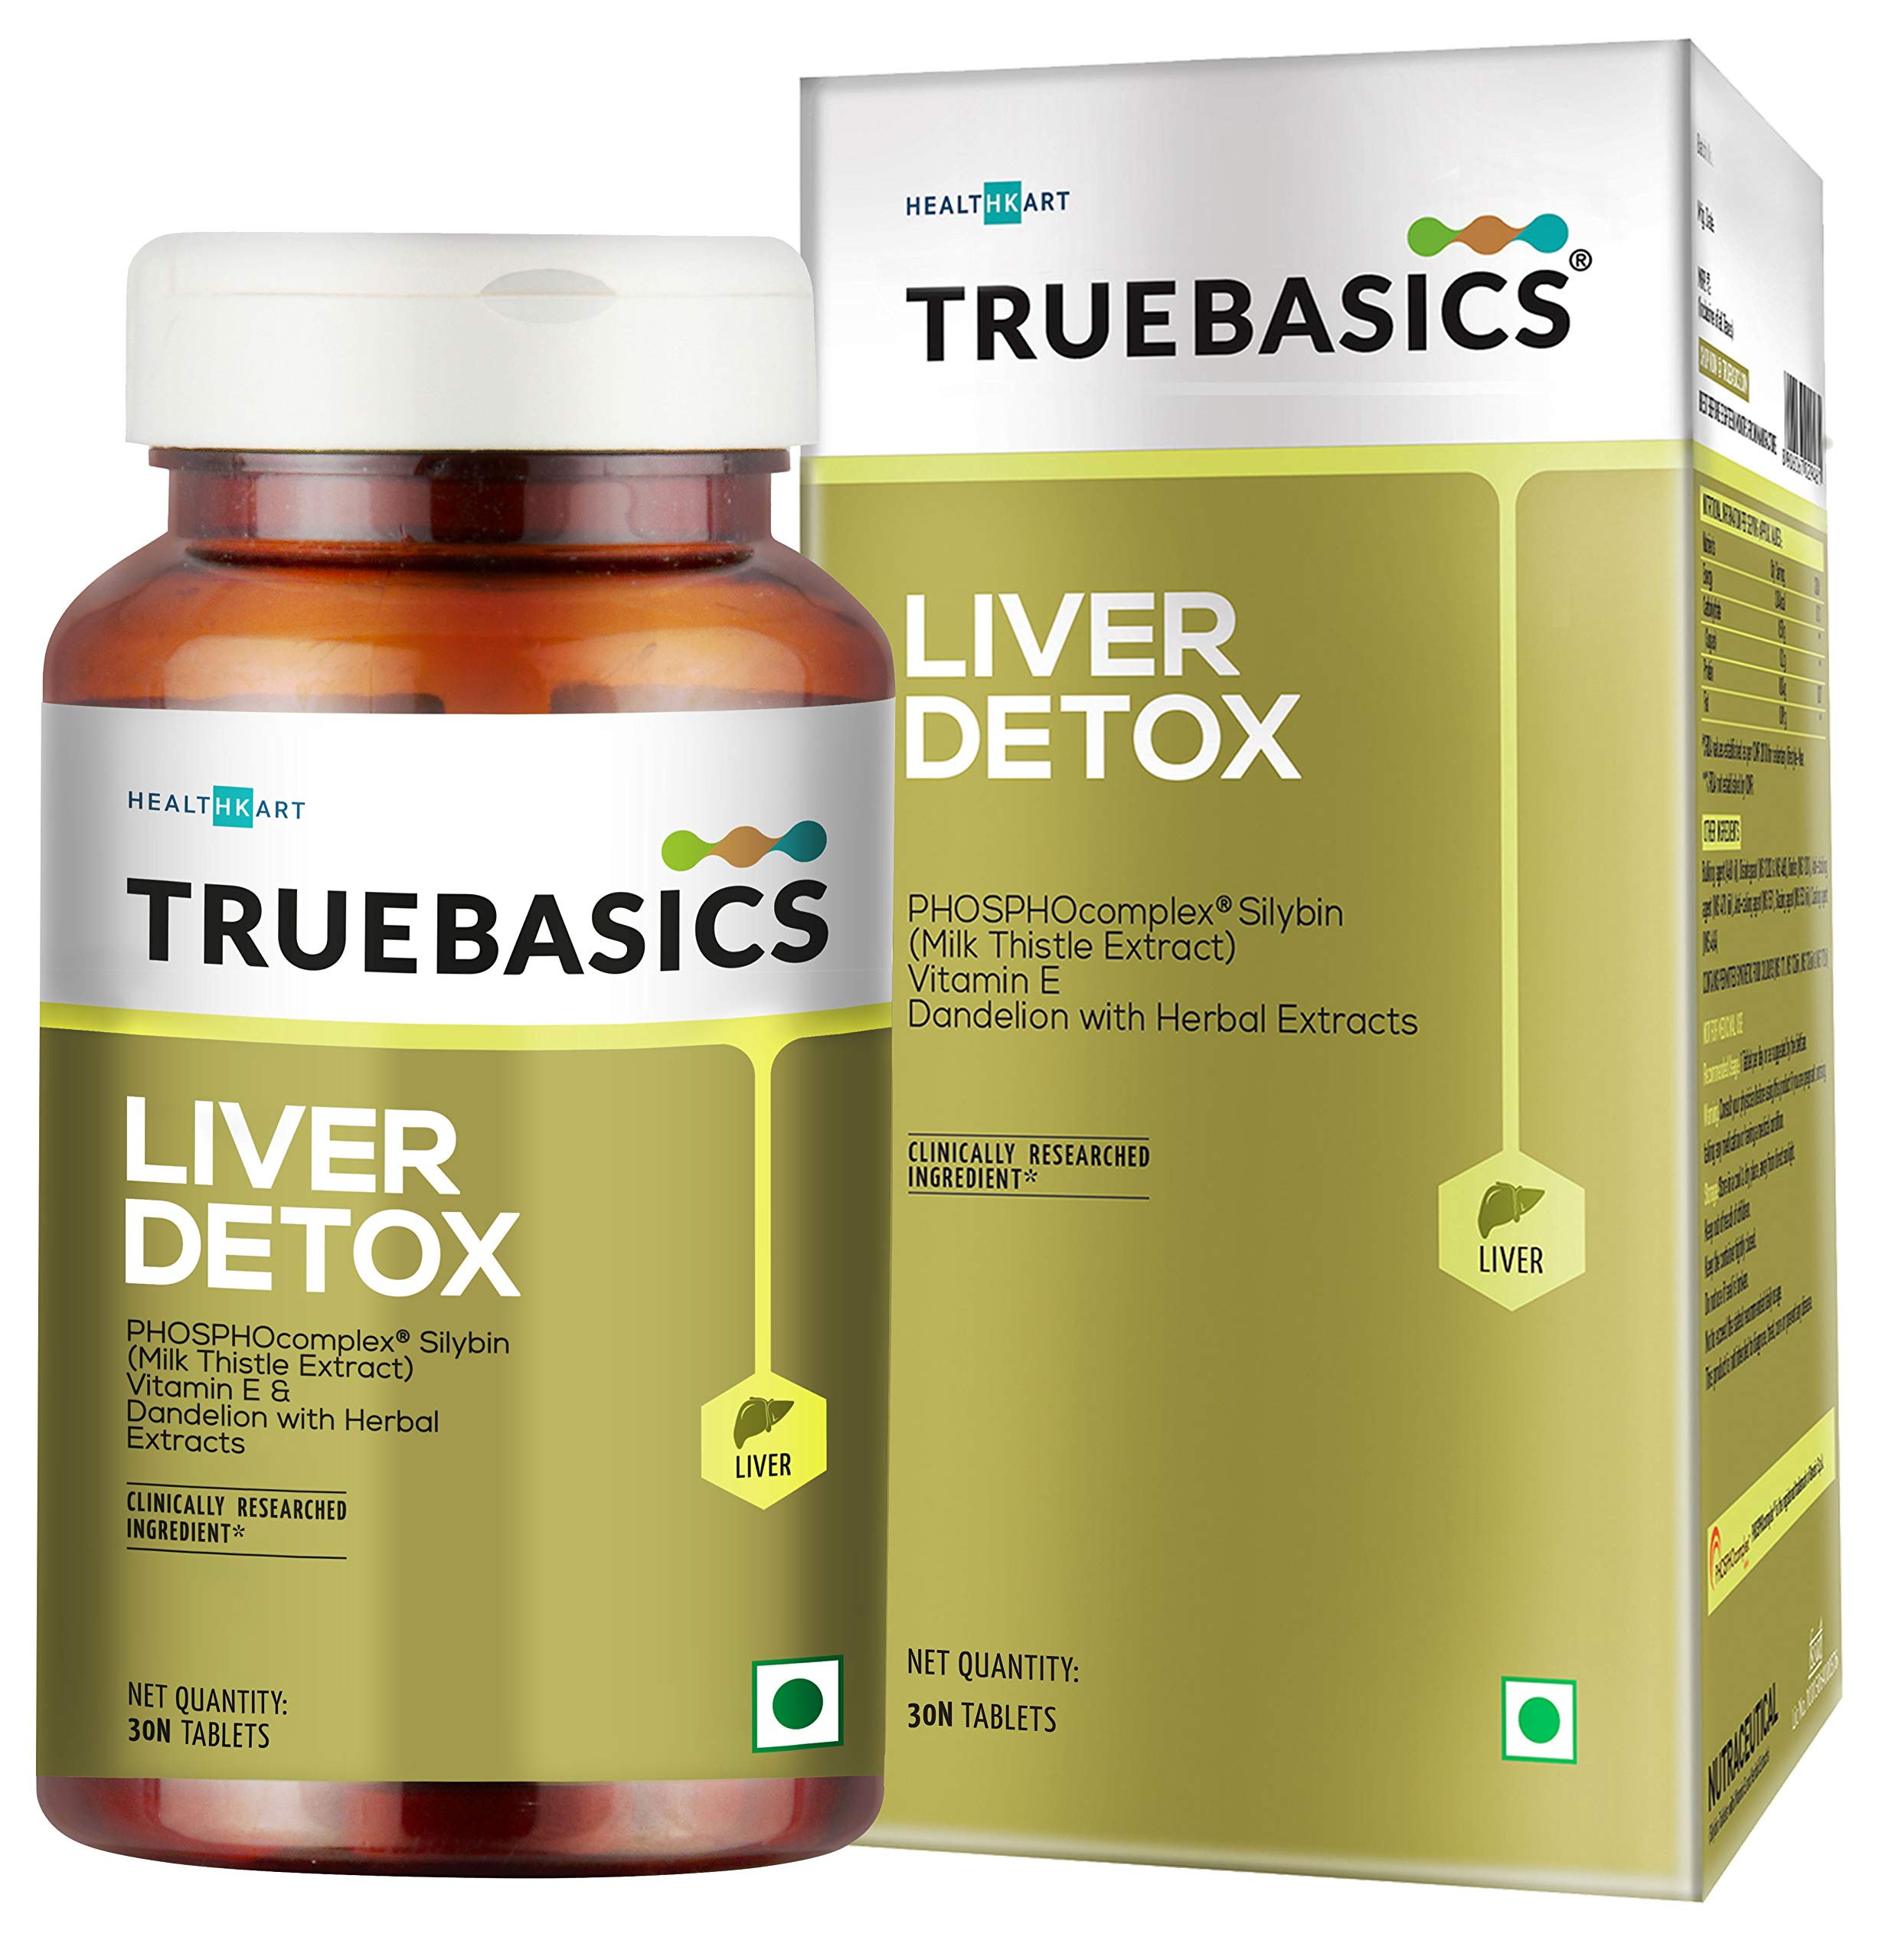 TrueBasics Liver Detox - Milk Thistle Extract (Silybin) with Dandelion & Vitamin E || Clinically Researched Ingredients…